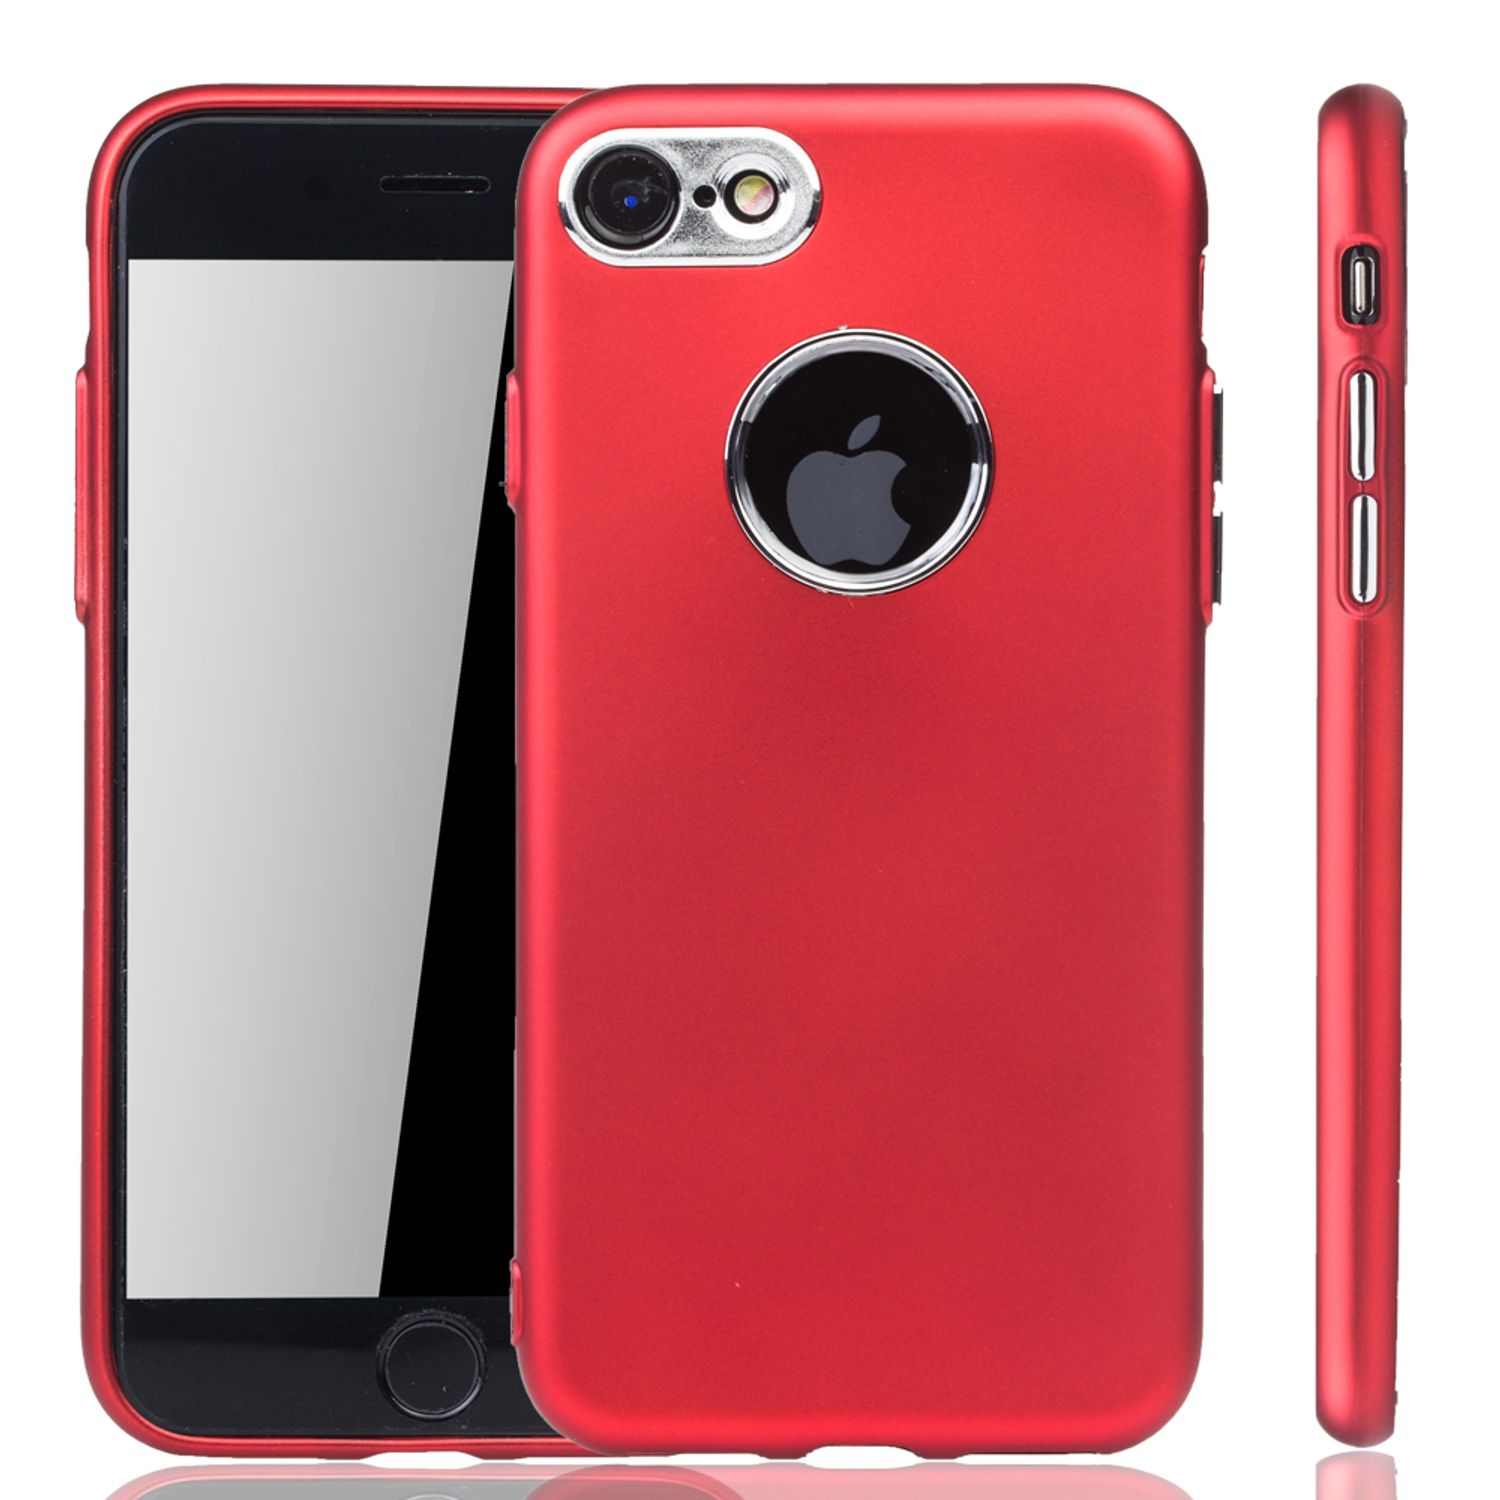 apple iphone 7 8 h lle handyh lle f r apple iphone 7 8 handy case in rot. Black Bedroom Furniture Sets. Home Design Ideas